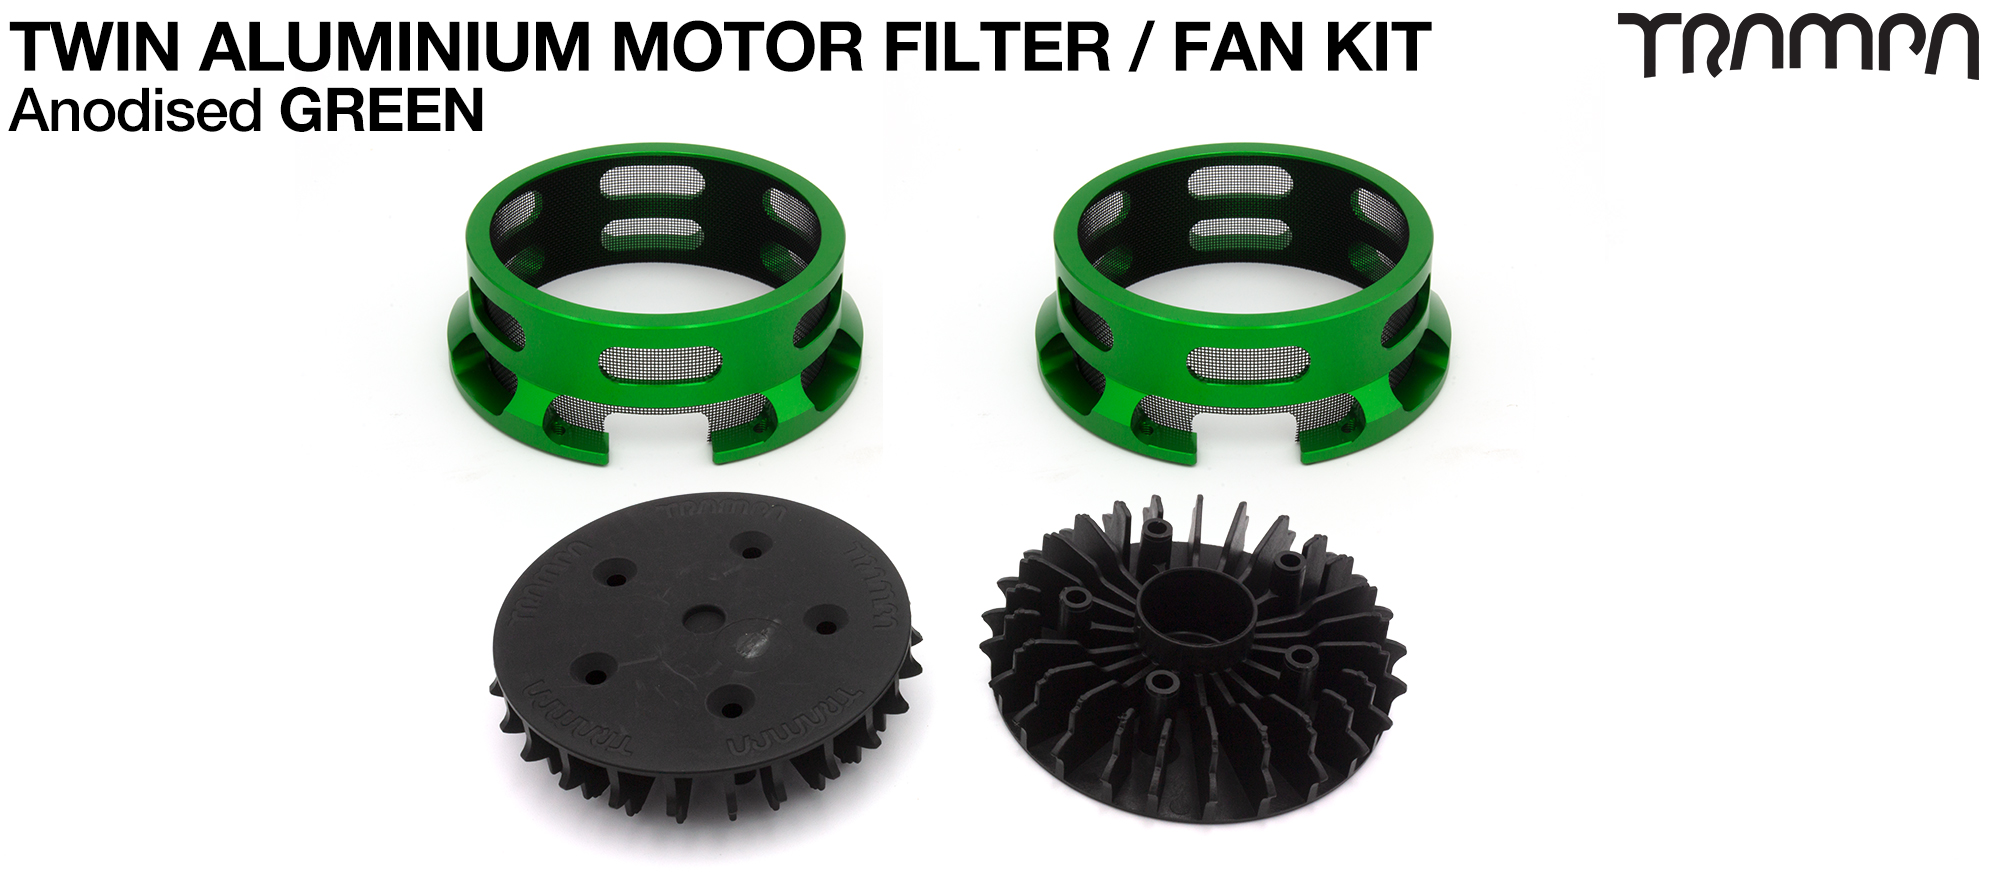 14FiFties BLACK Motor protection Housing with GREEN particle Filter & Fan - TWIN